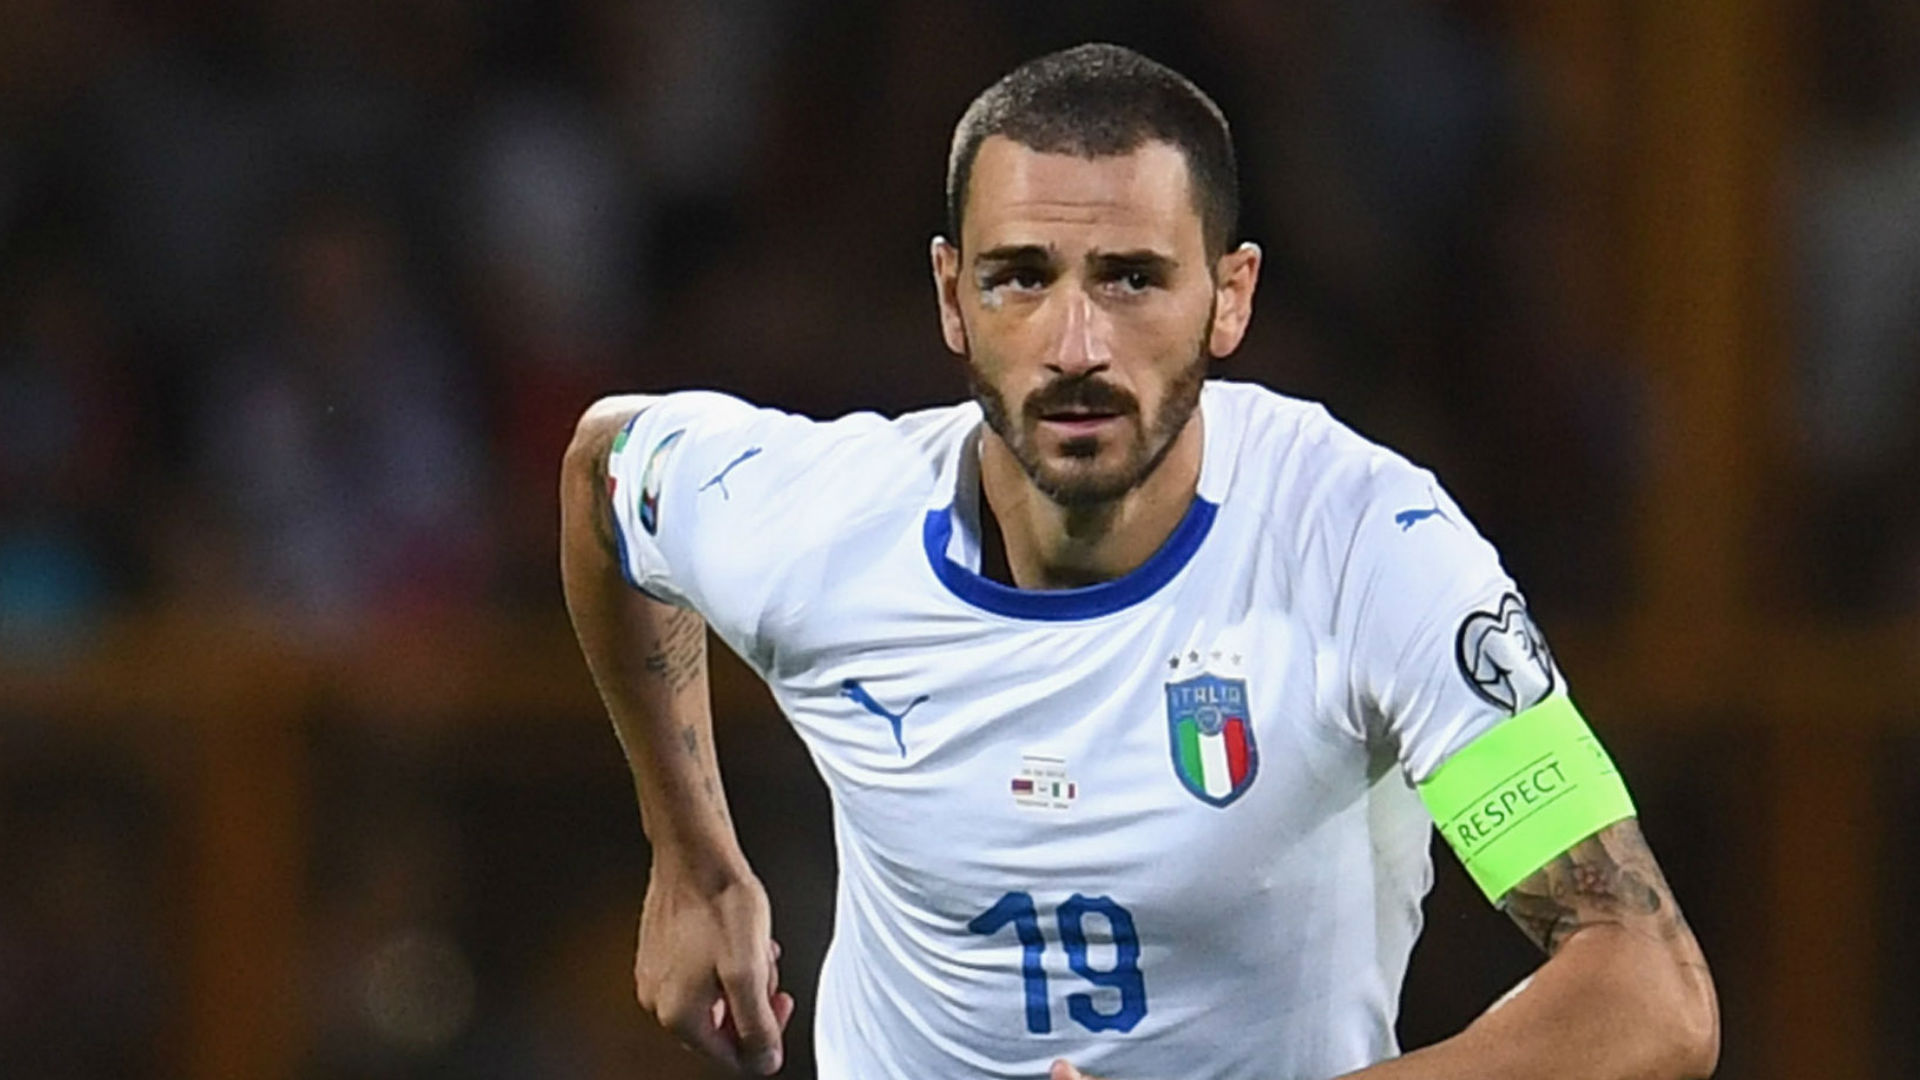 Euro 2020 Betting Tips: Italy set for comfortable win over Greece & best bets for Saturday